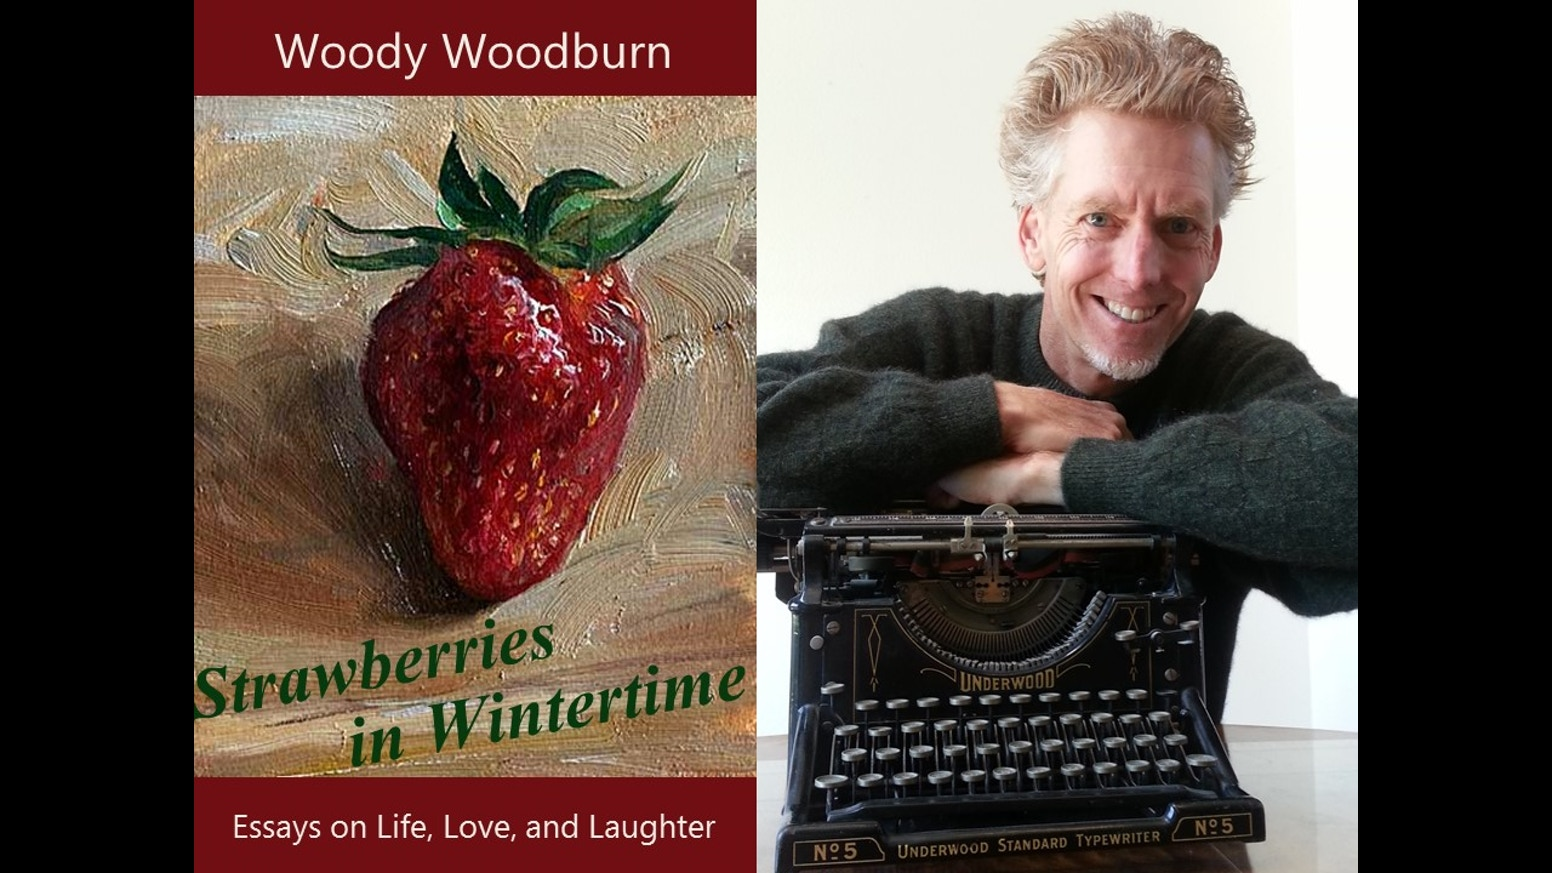 strawberries in wintertime book by woody woodburn kickstarter essays on life love and laughter by woody woodburn national award winning columnist and author of wooden me get your copy now